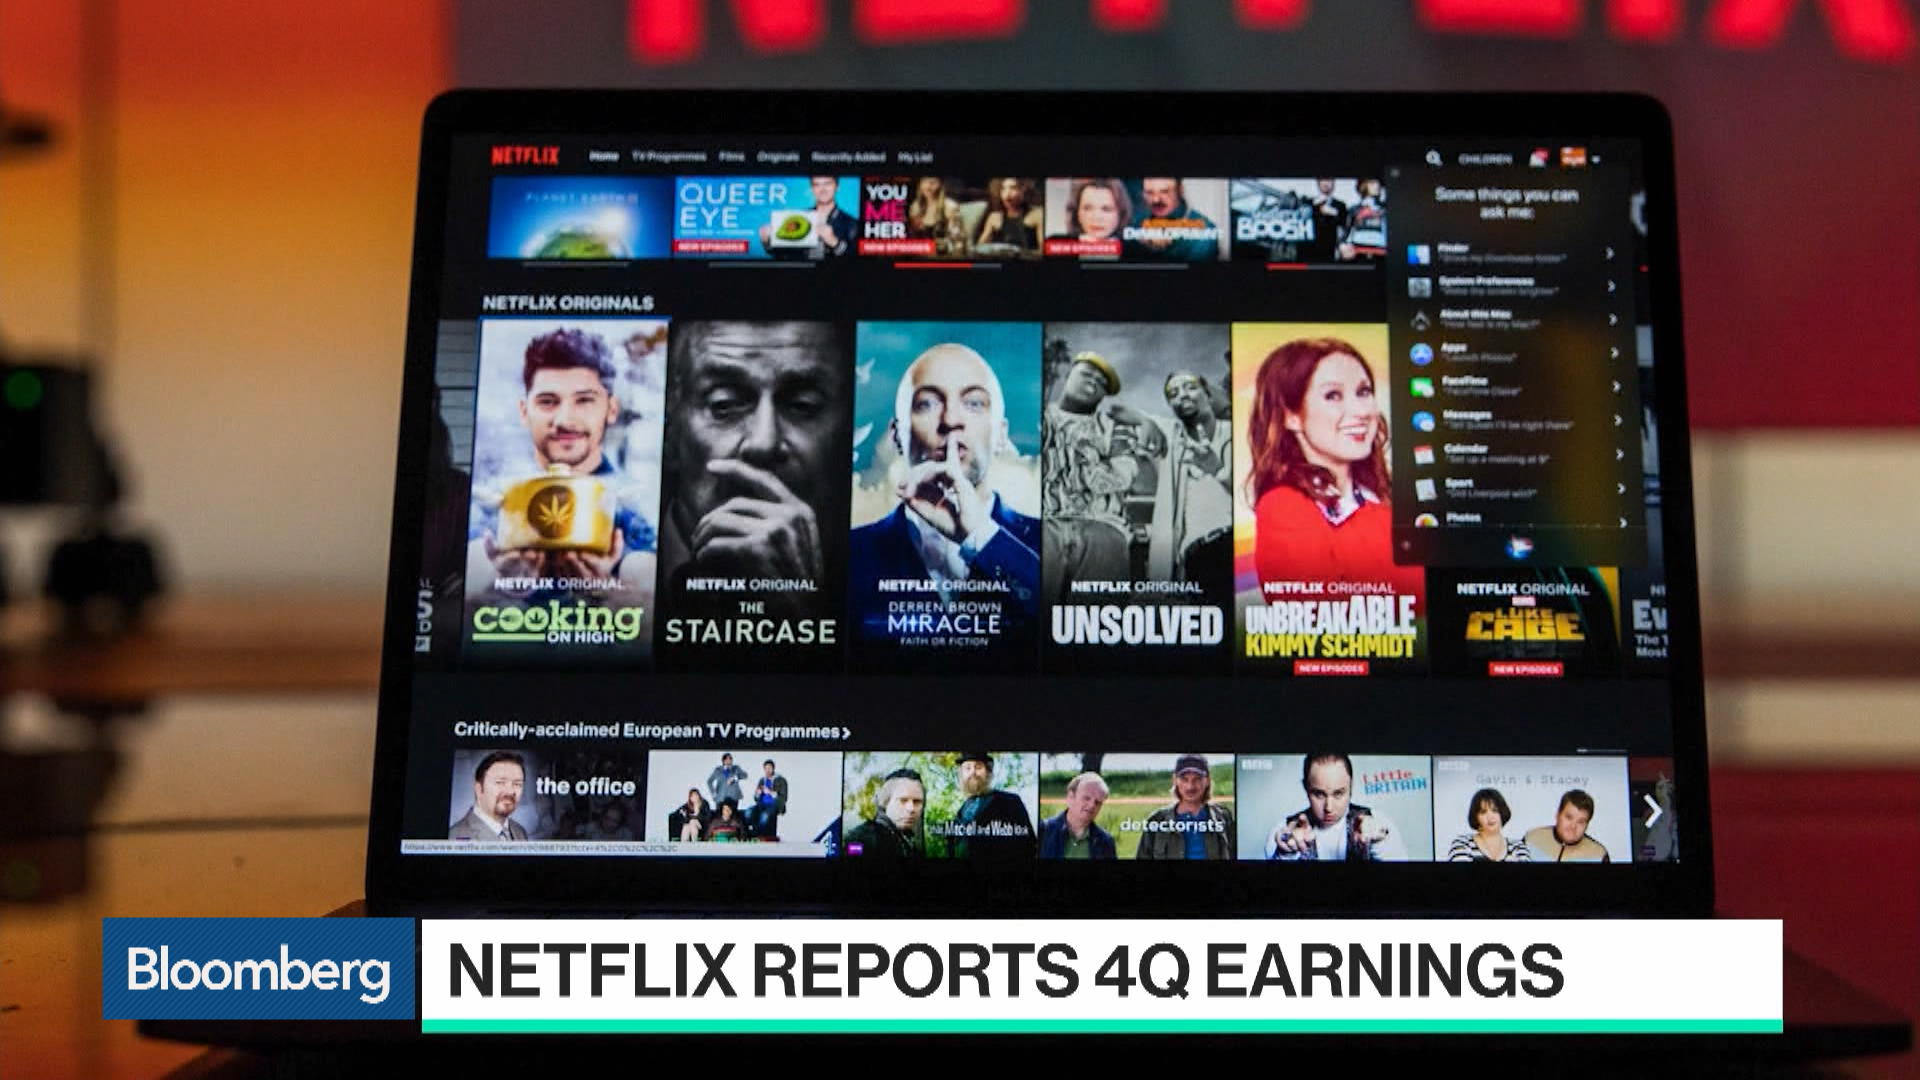 Netflix (NFLX) Stock Falls as New Shows Fail to Hook Viewers